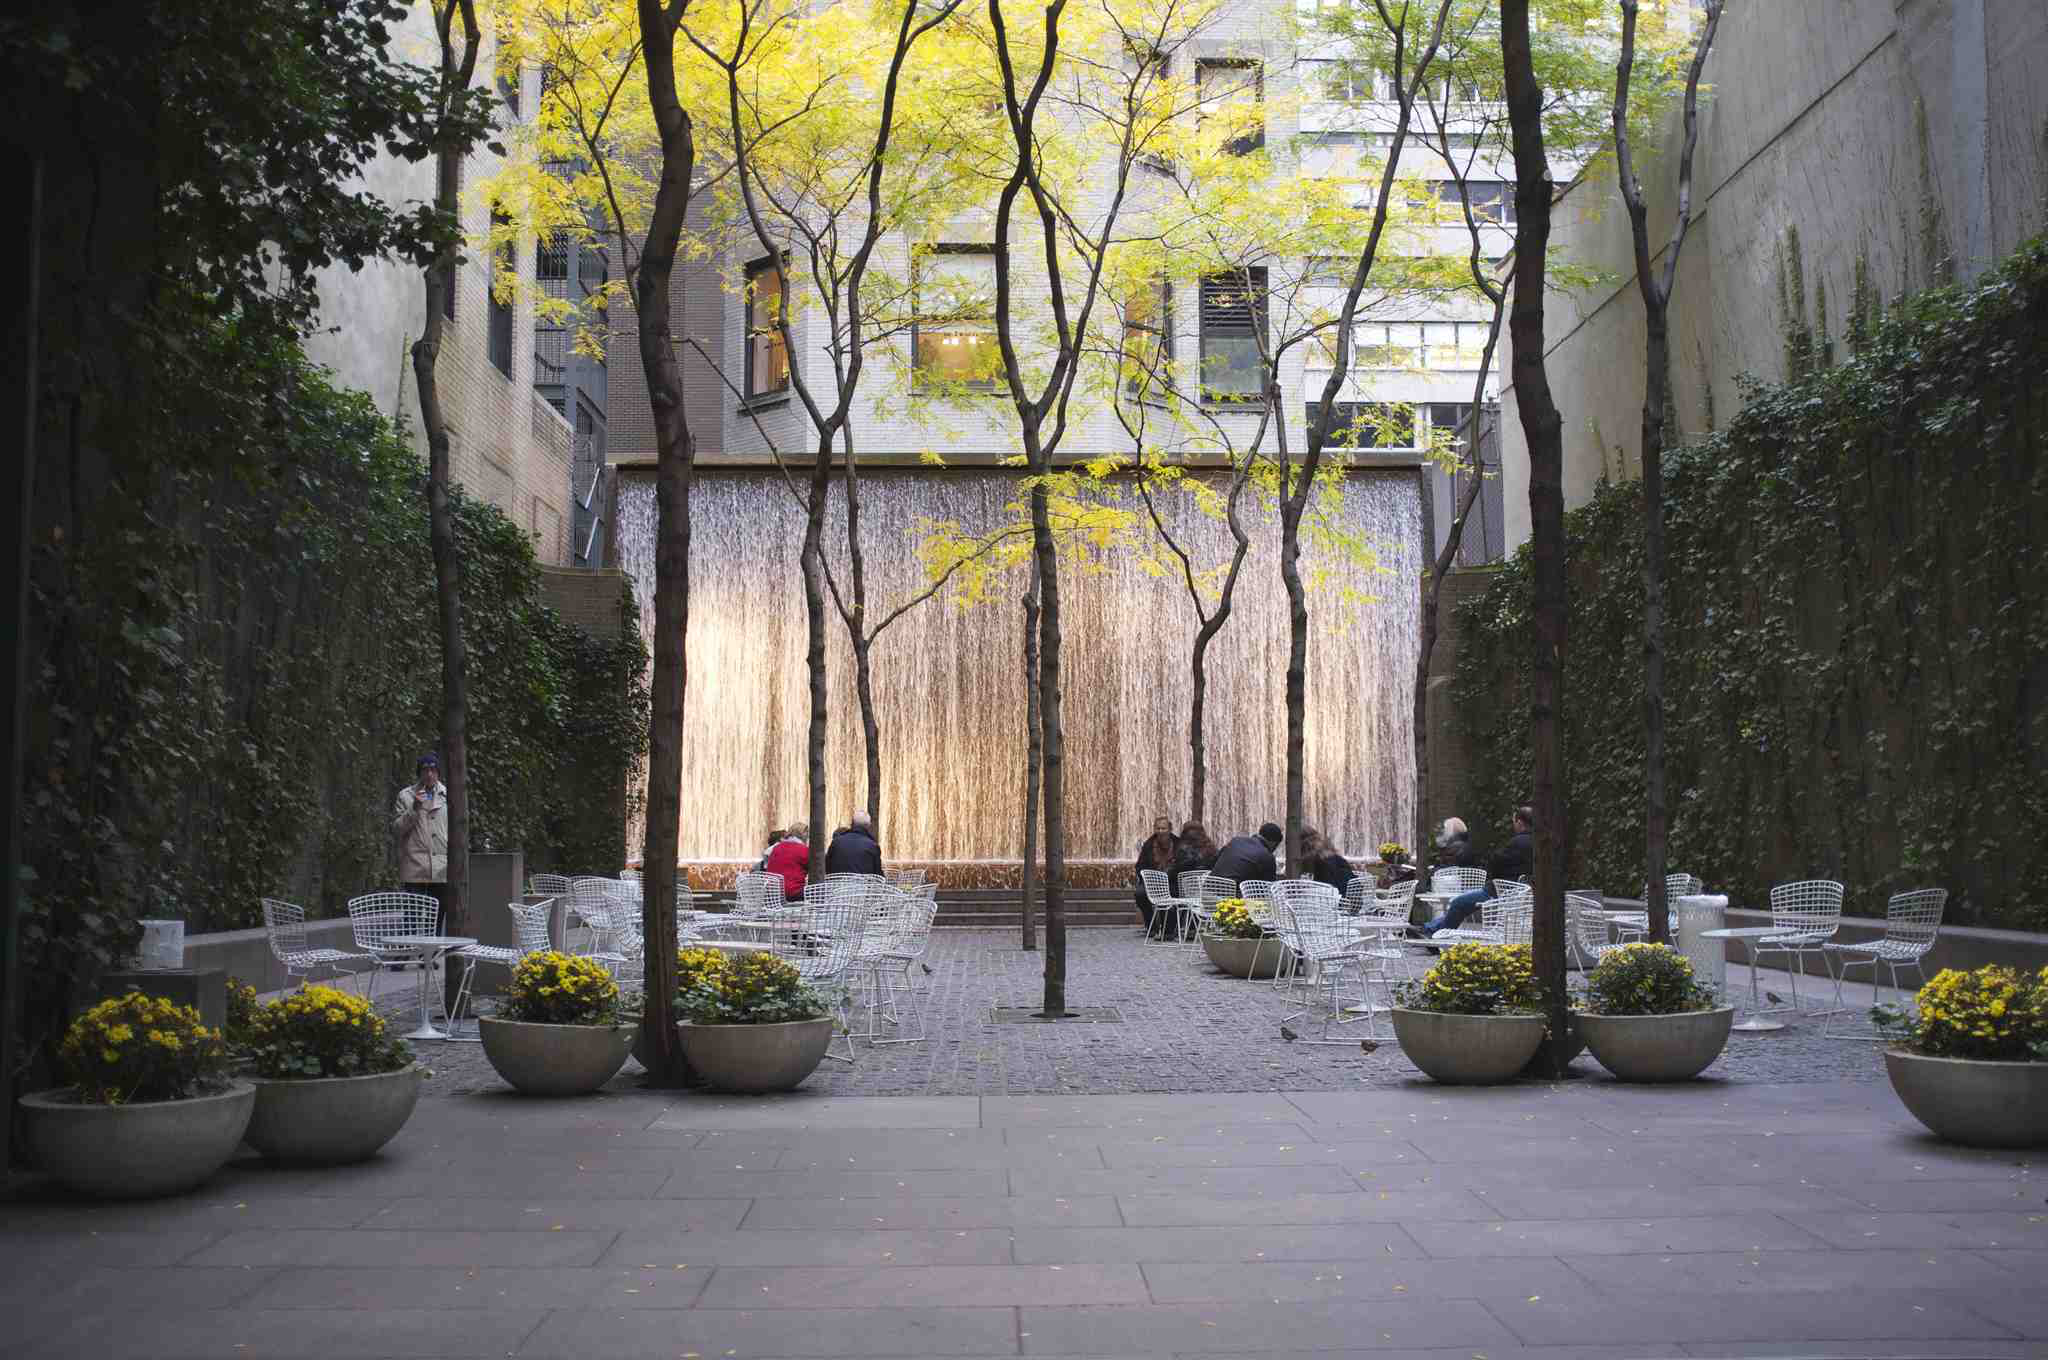 Paley Park In New York City The Original Vest Pocket Park